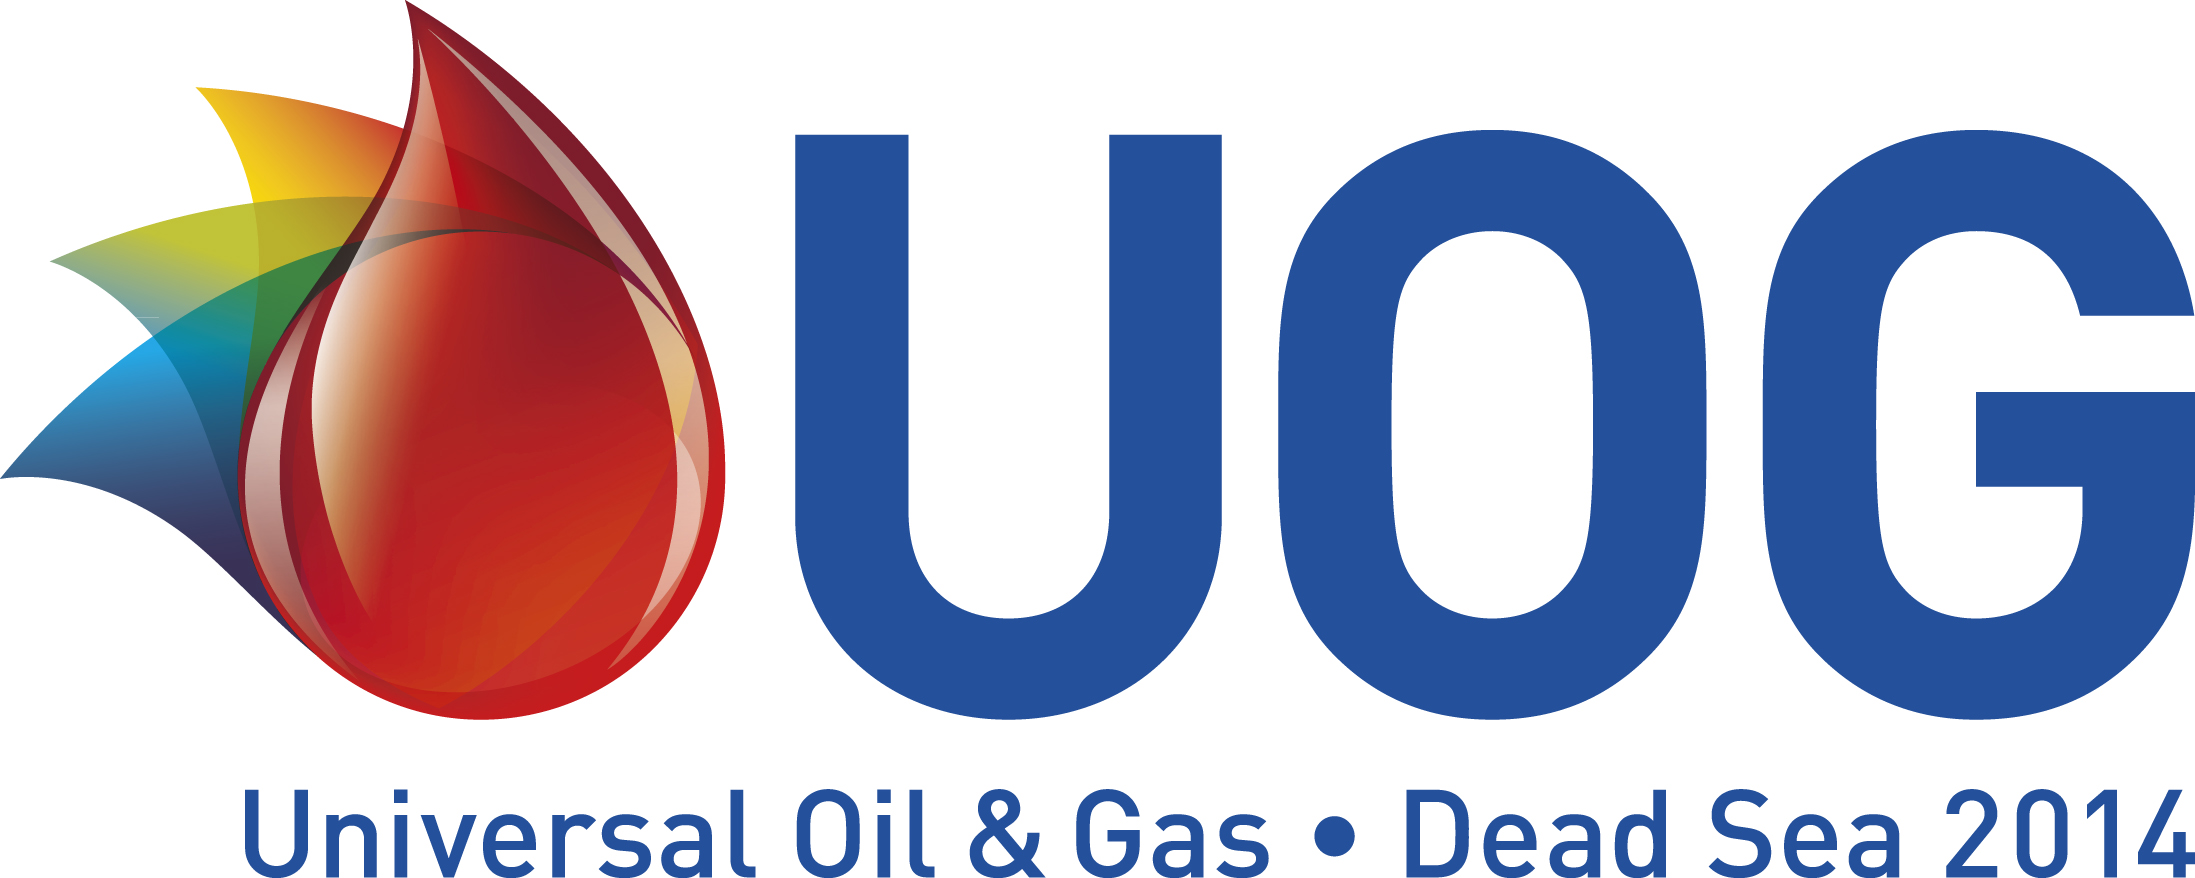 Media Release: World-renowned energy experts flock to speak at Israel's first international Oil & Gas Conference